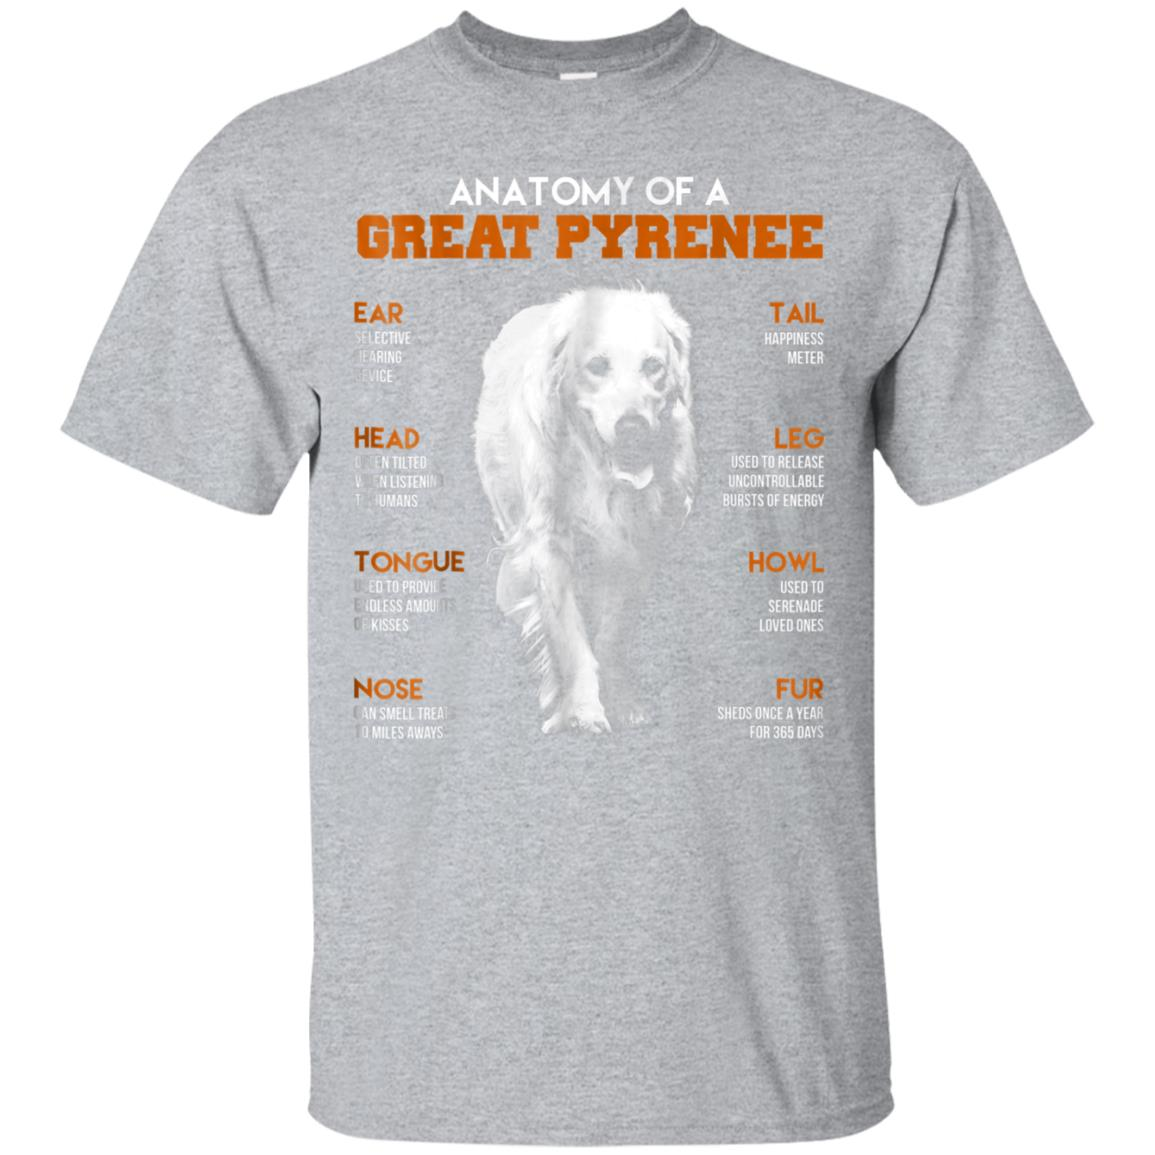 Anatomy Of A Great Pyrenee Dogs T Shirt Funny Gift 99promocode